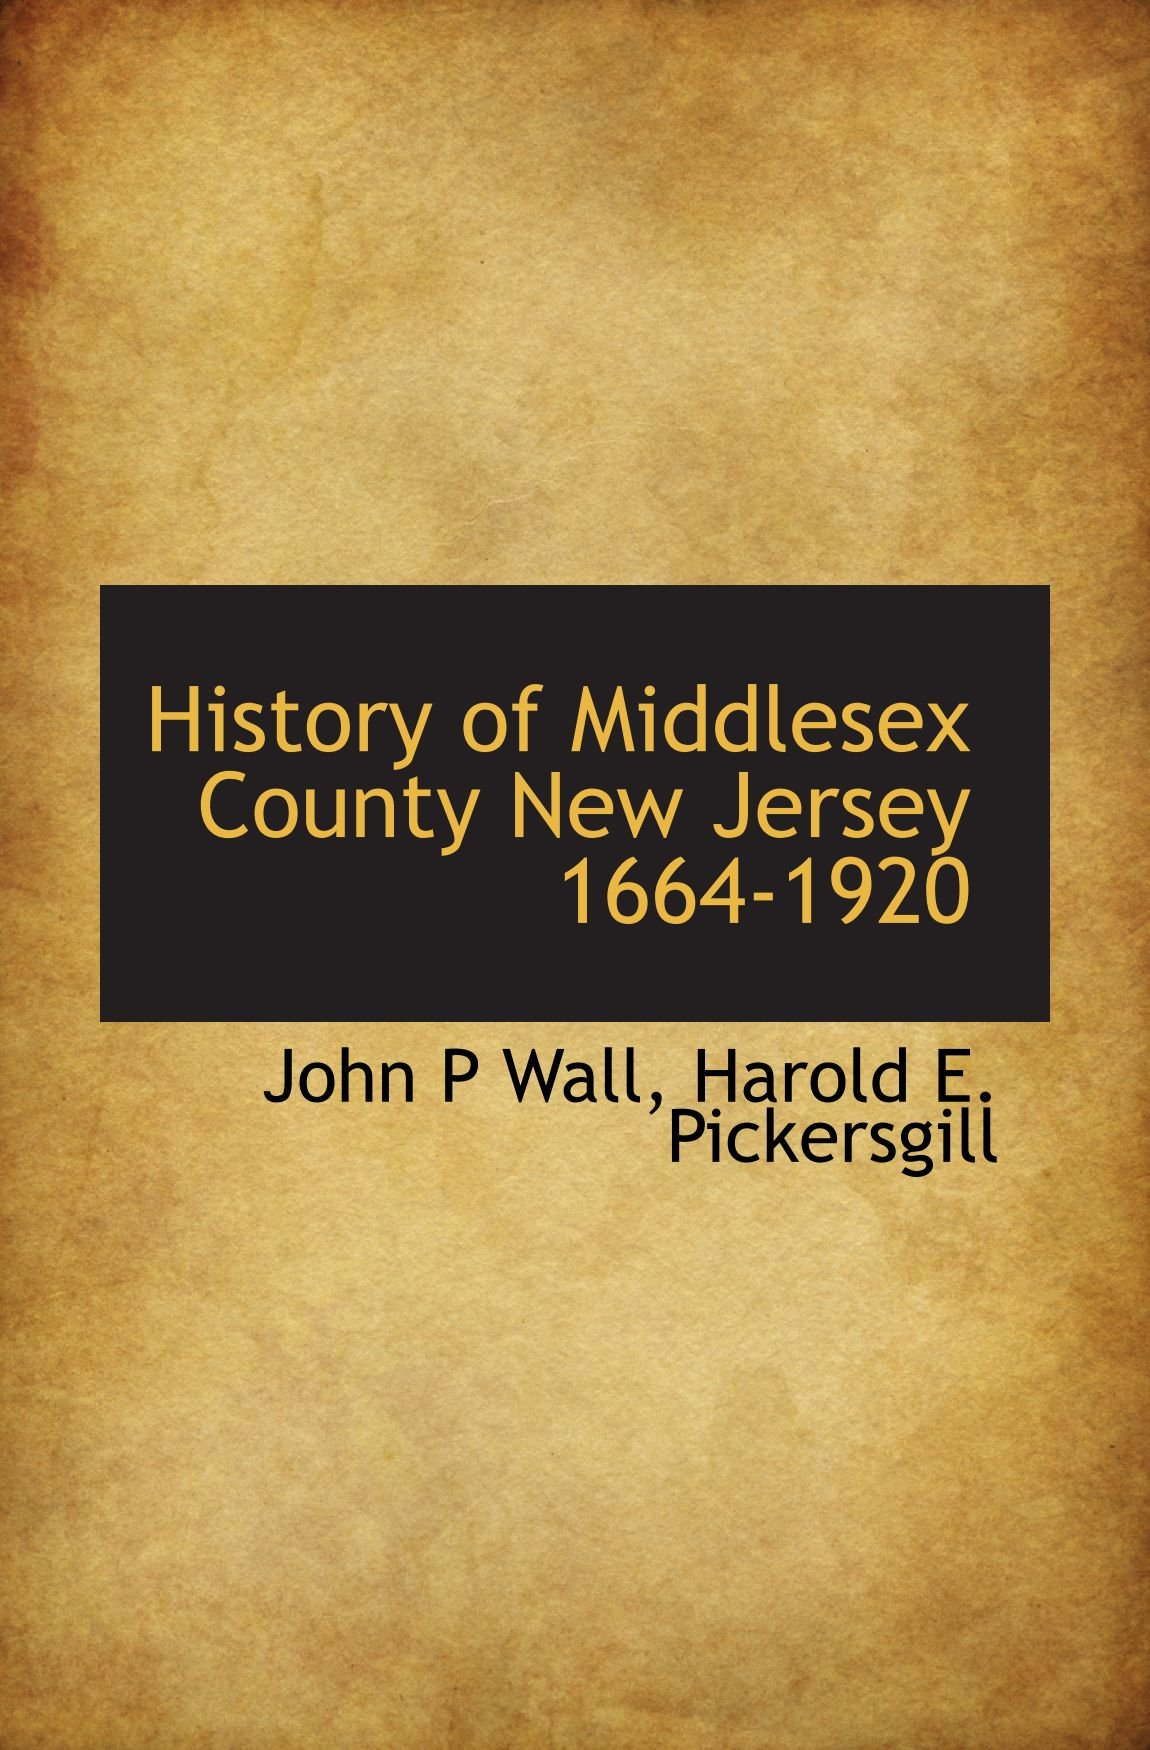 History of Middlesex County New Jersey 1664-1920 PDF